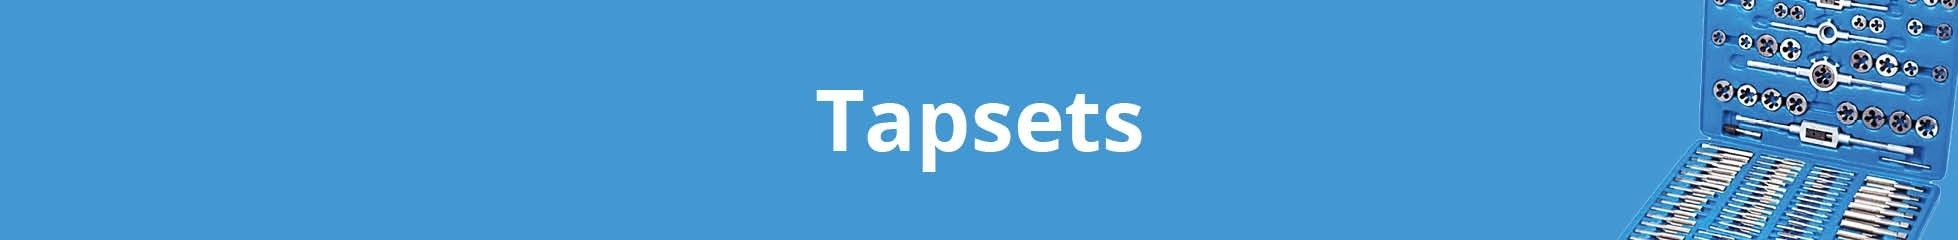 Tapsets